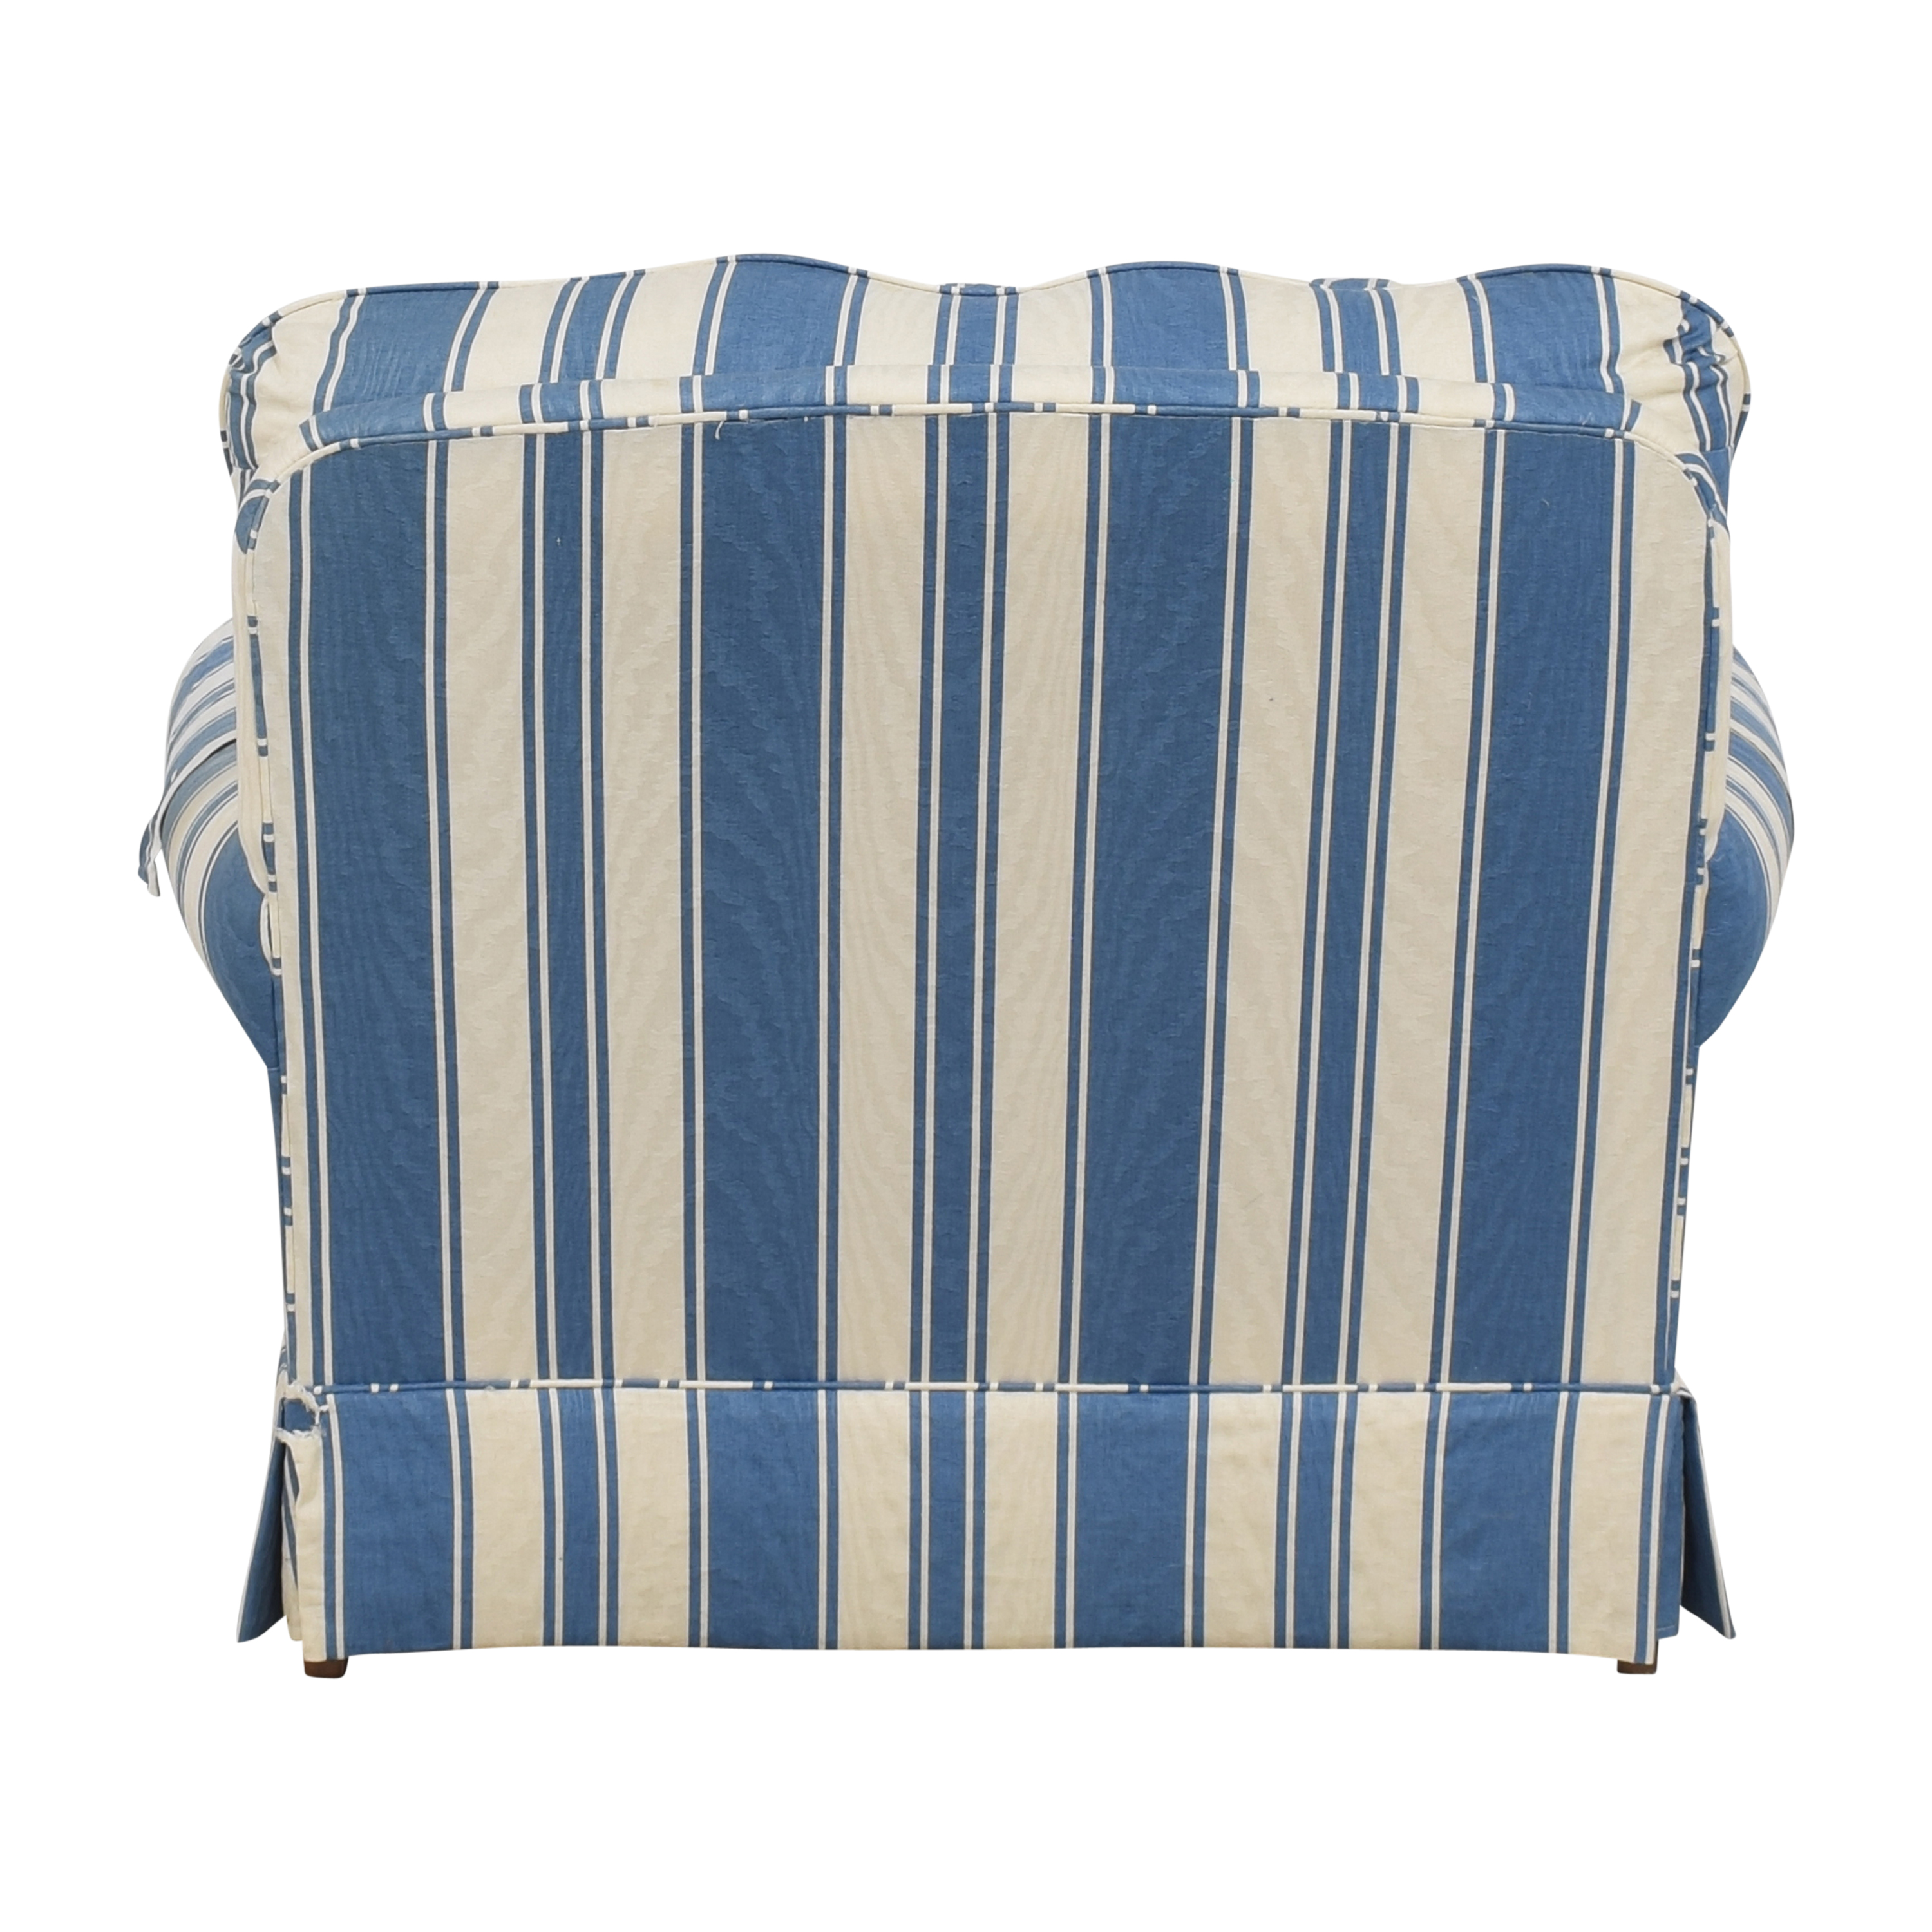 Clayton Marcus Clayton Marcus Striped Accent Chair on sale